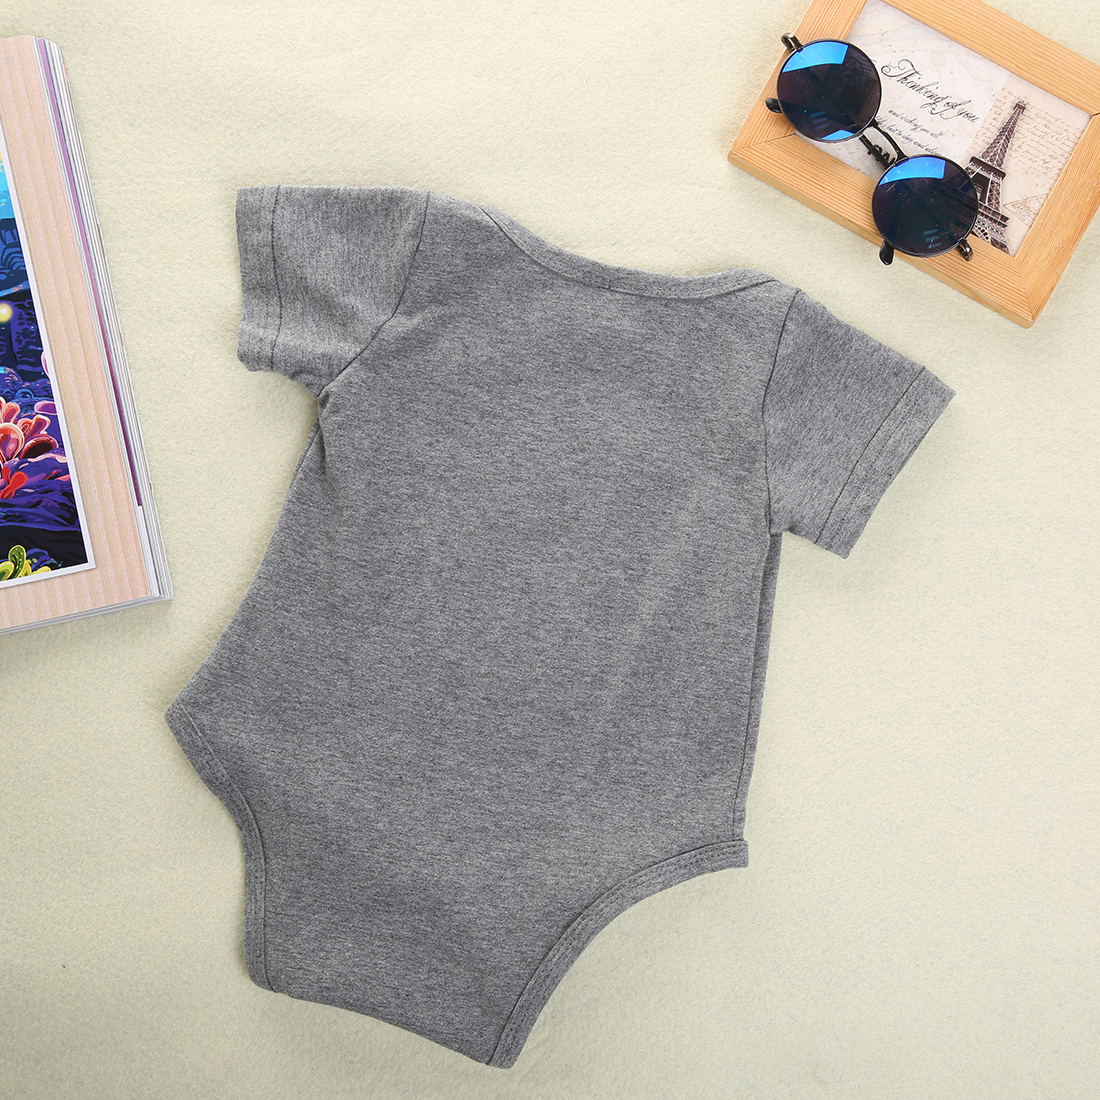 16 New Baby Boys Girls Bowtie Quote Bodysuit Playsuit Outfits Clothing 0-12M 7